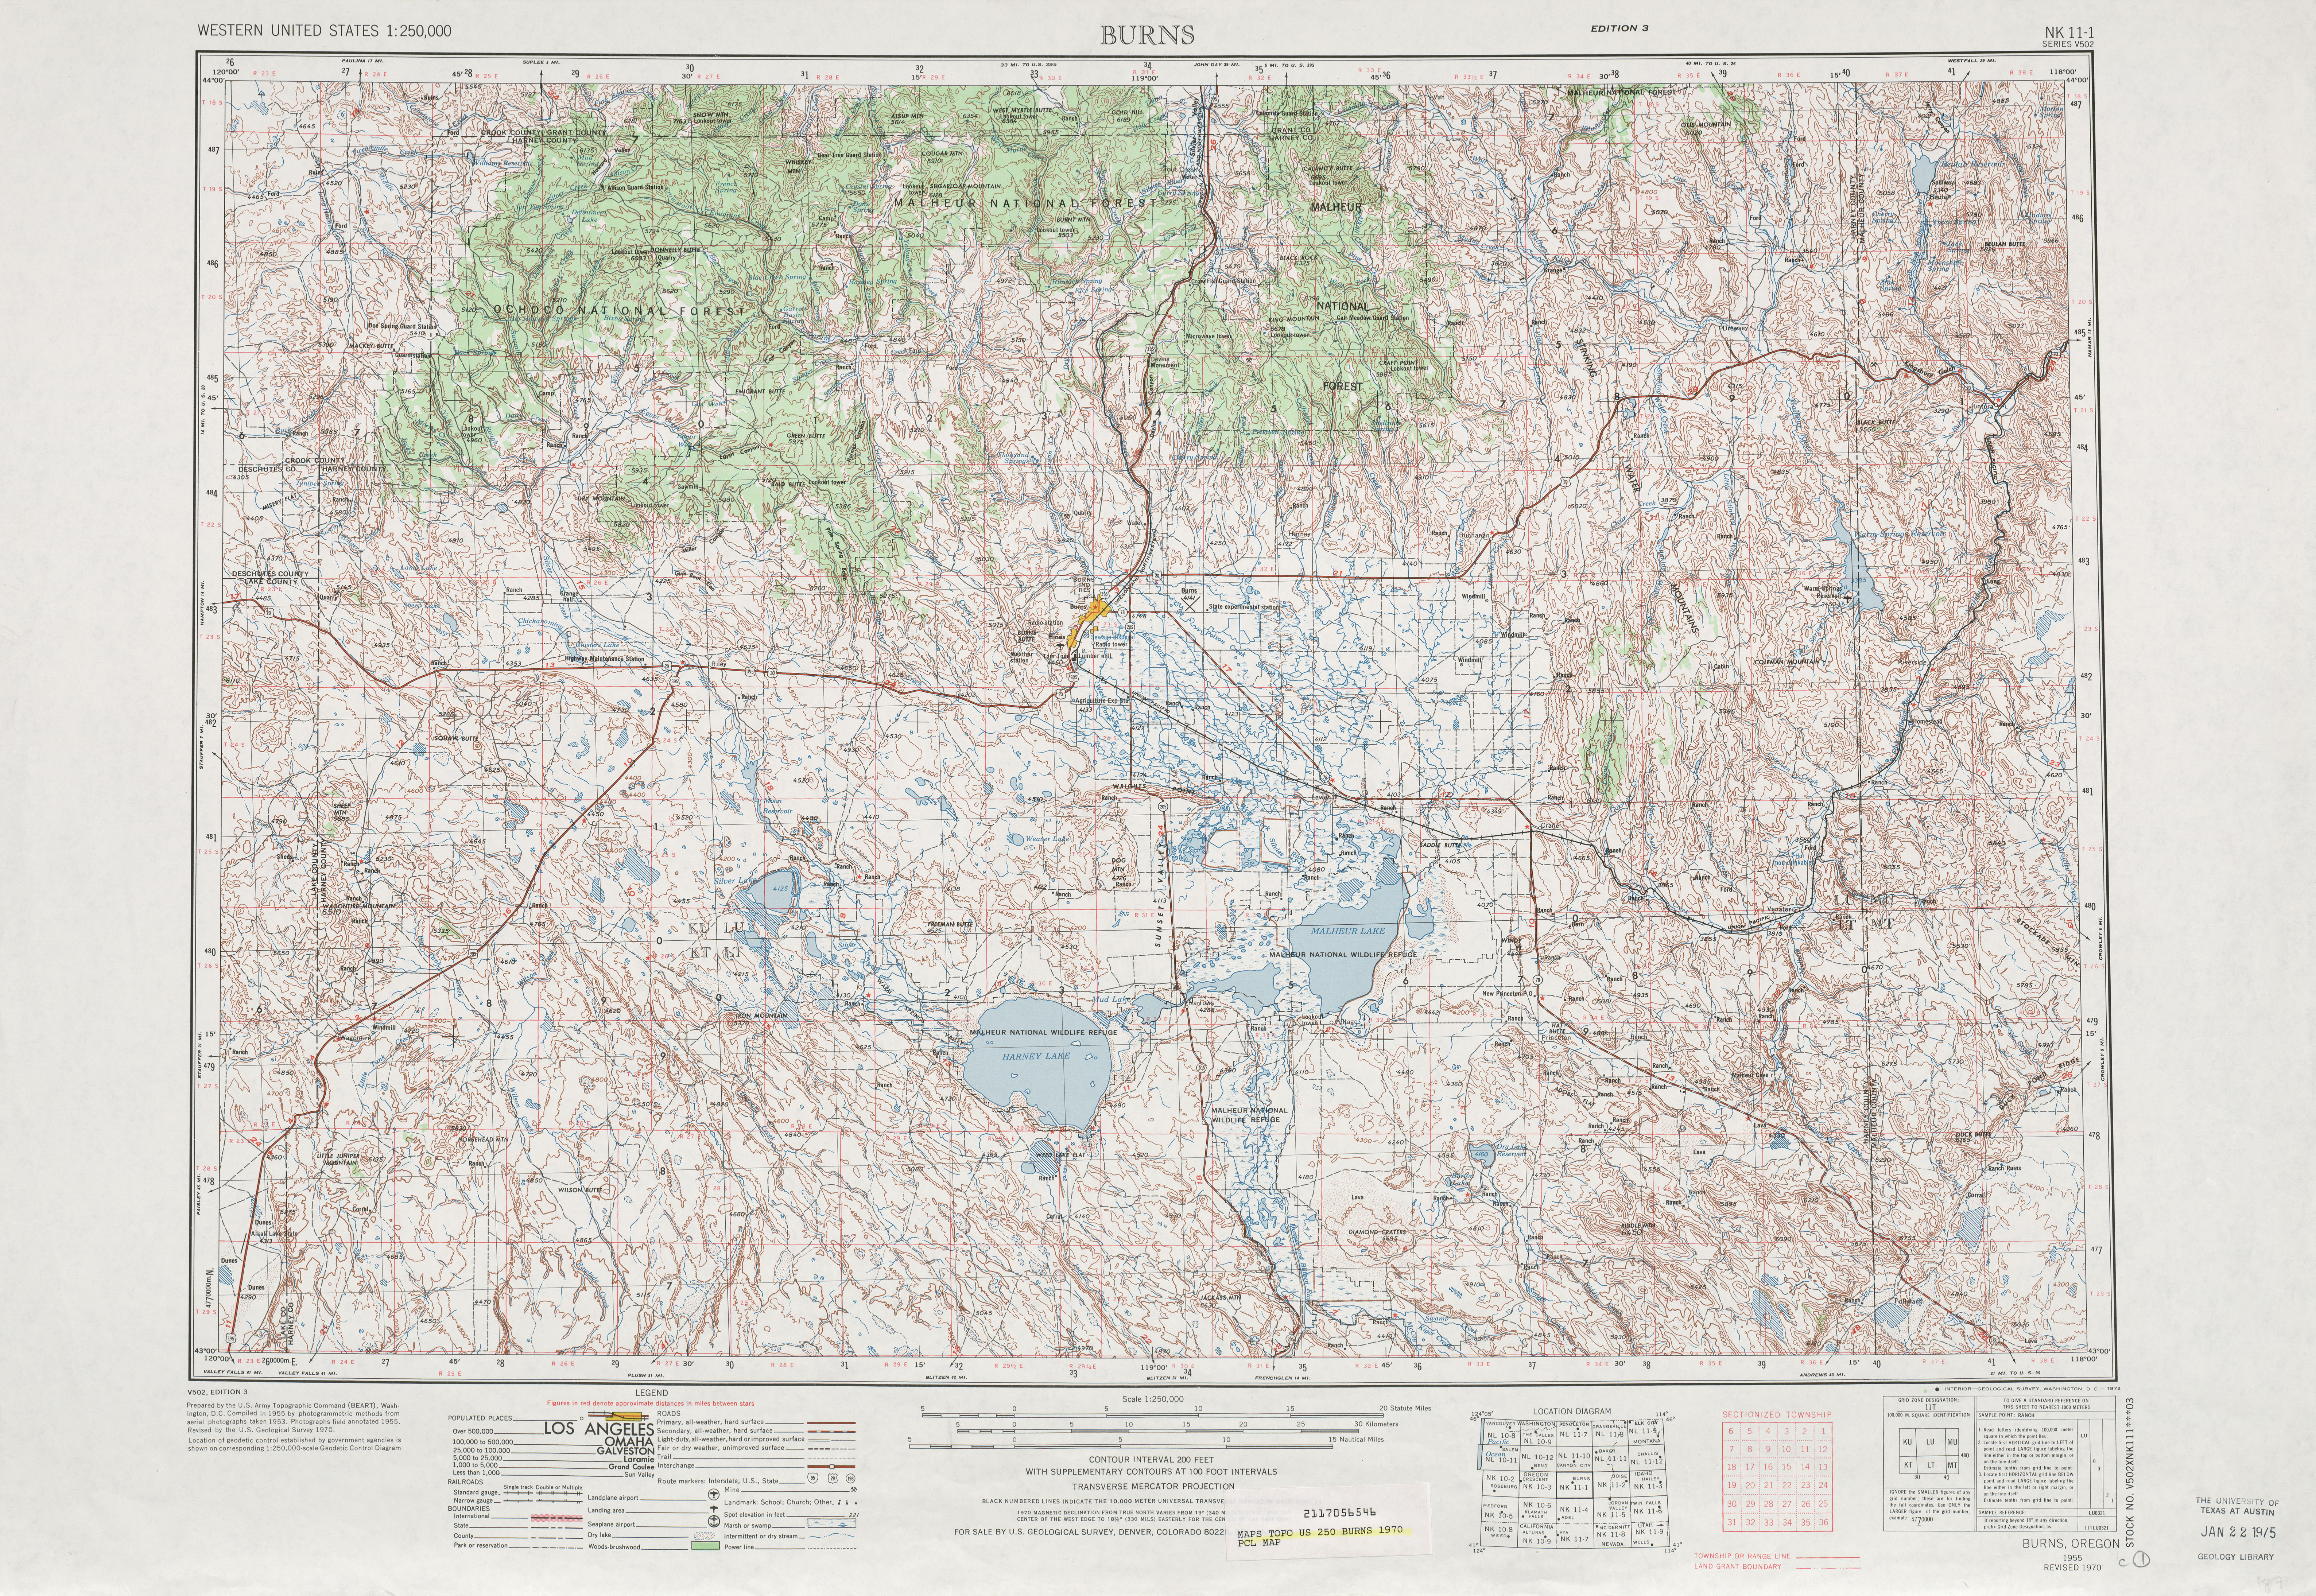 Burns Topographic Map Sheet, United States 1970